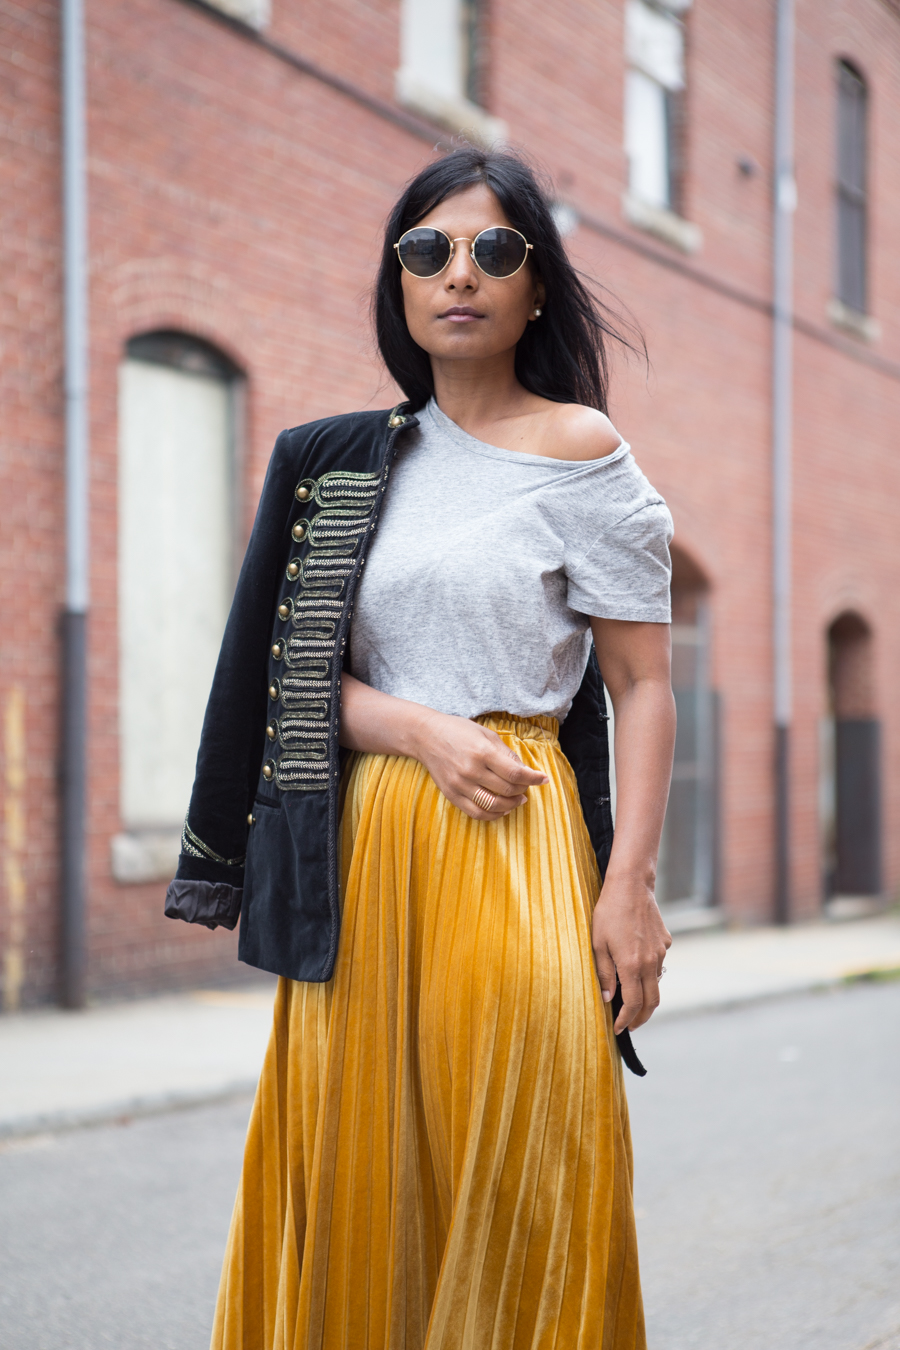 nsale, fall style, summer style, velvet, style trends, outfit ideas, style tips, petite fashion, pleats, bow shoes, statement pieces, colorful style, pre-fall 2017